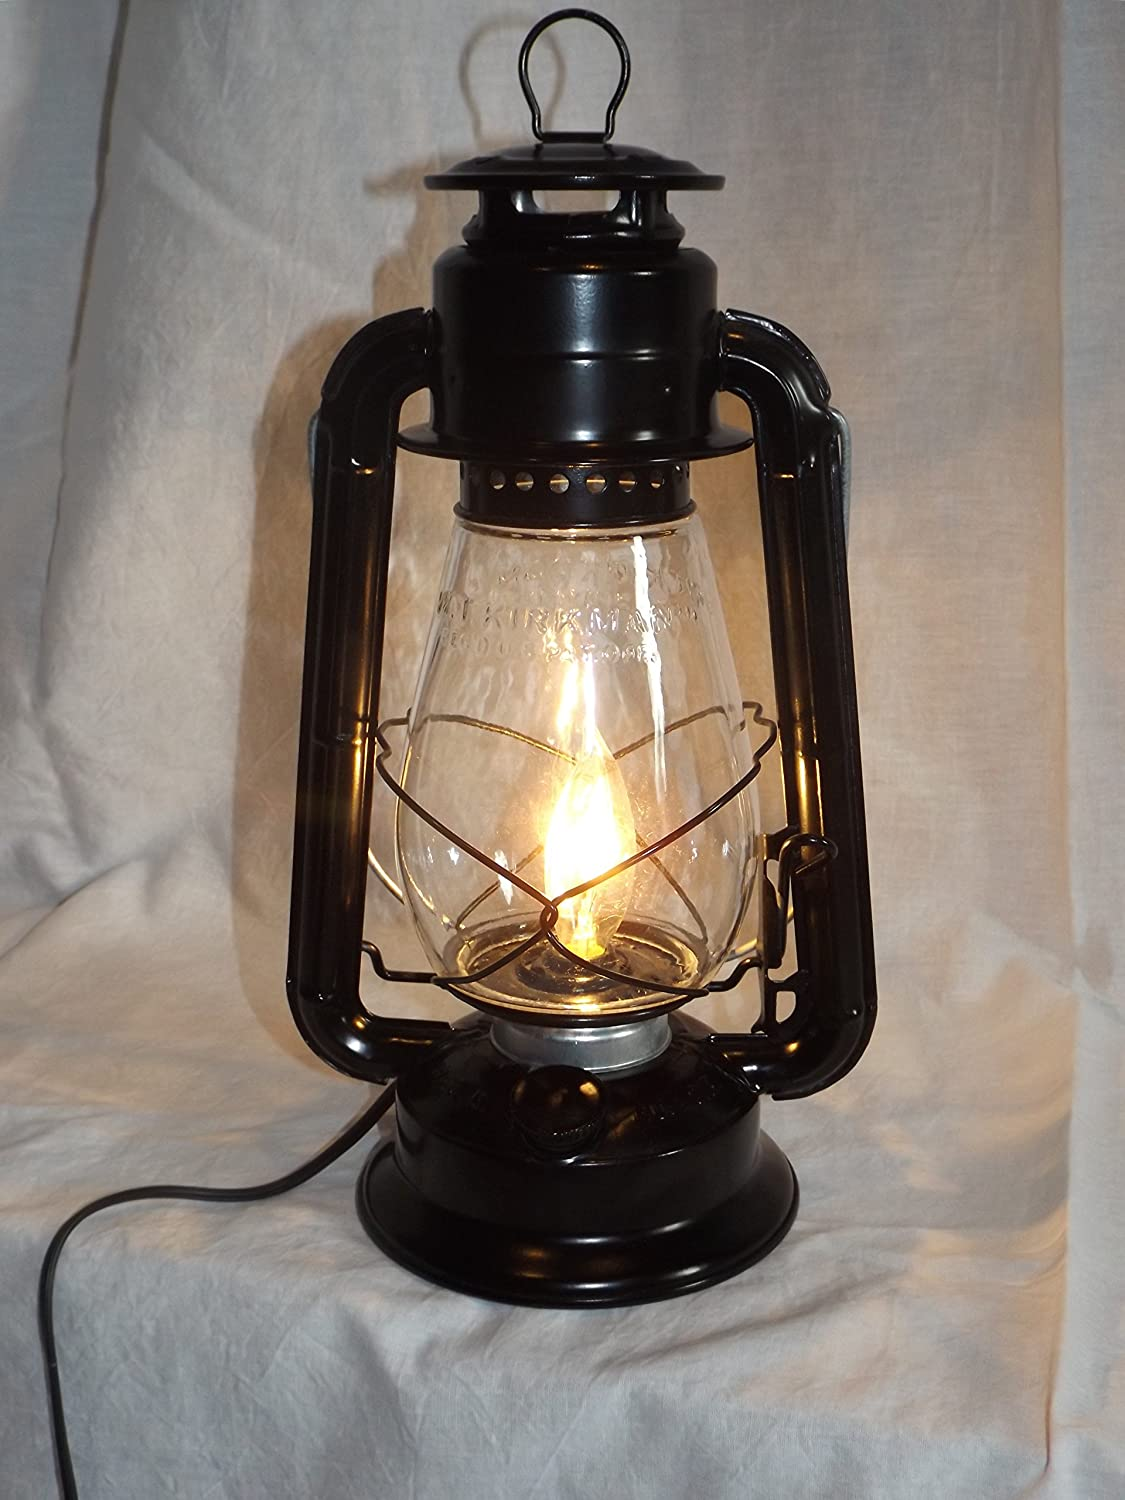 Dietz junior vintage style electric lantern table lamp black dietz junior vintage style electric lantern table lamp black amazon arubaitofo Images